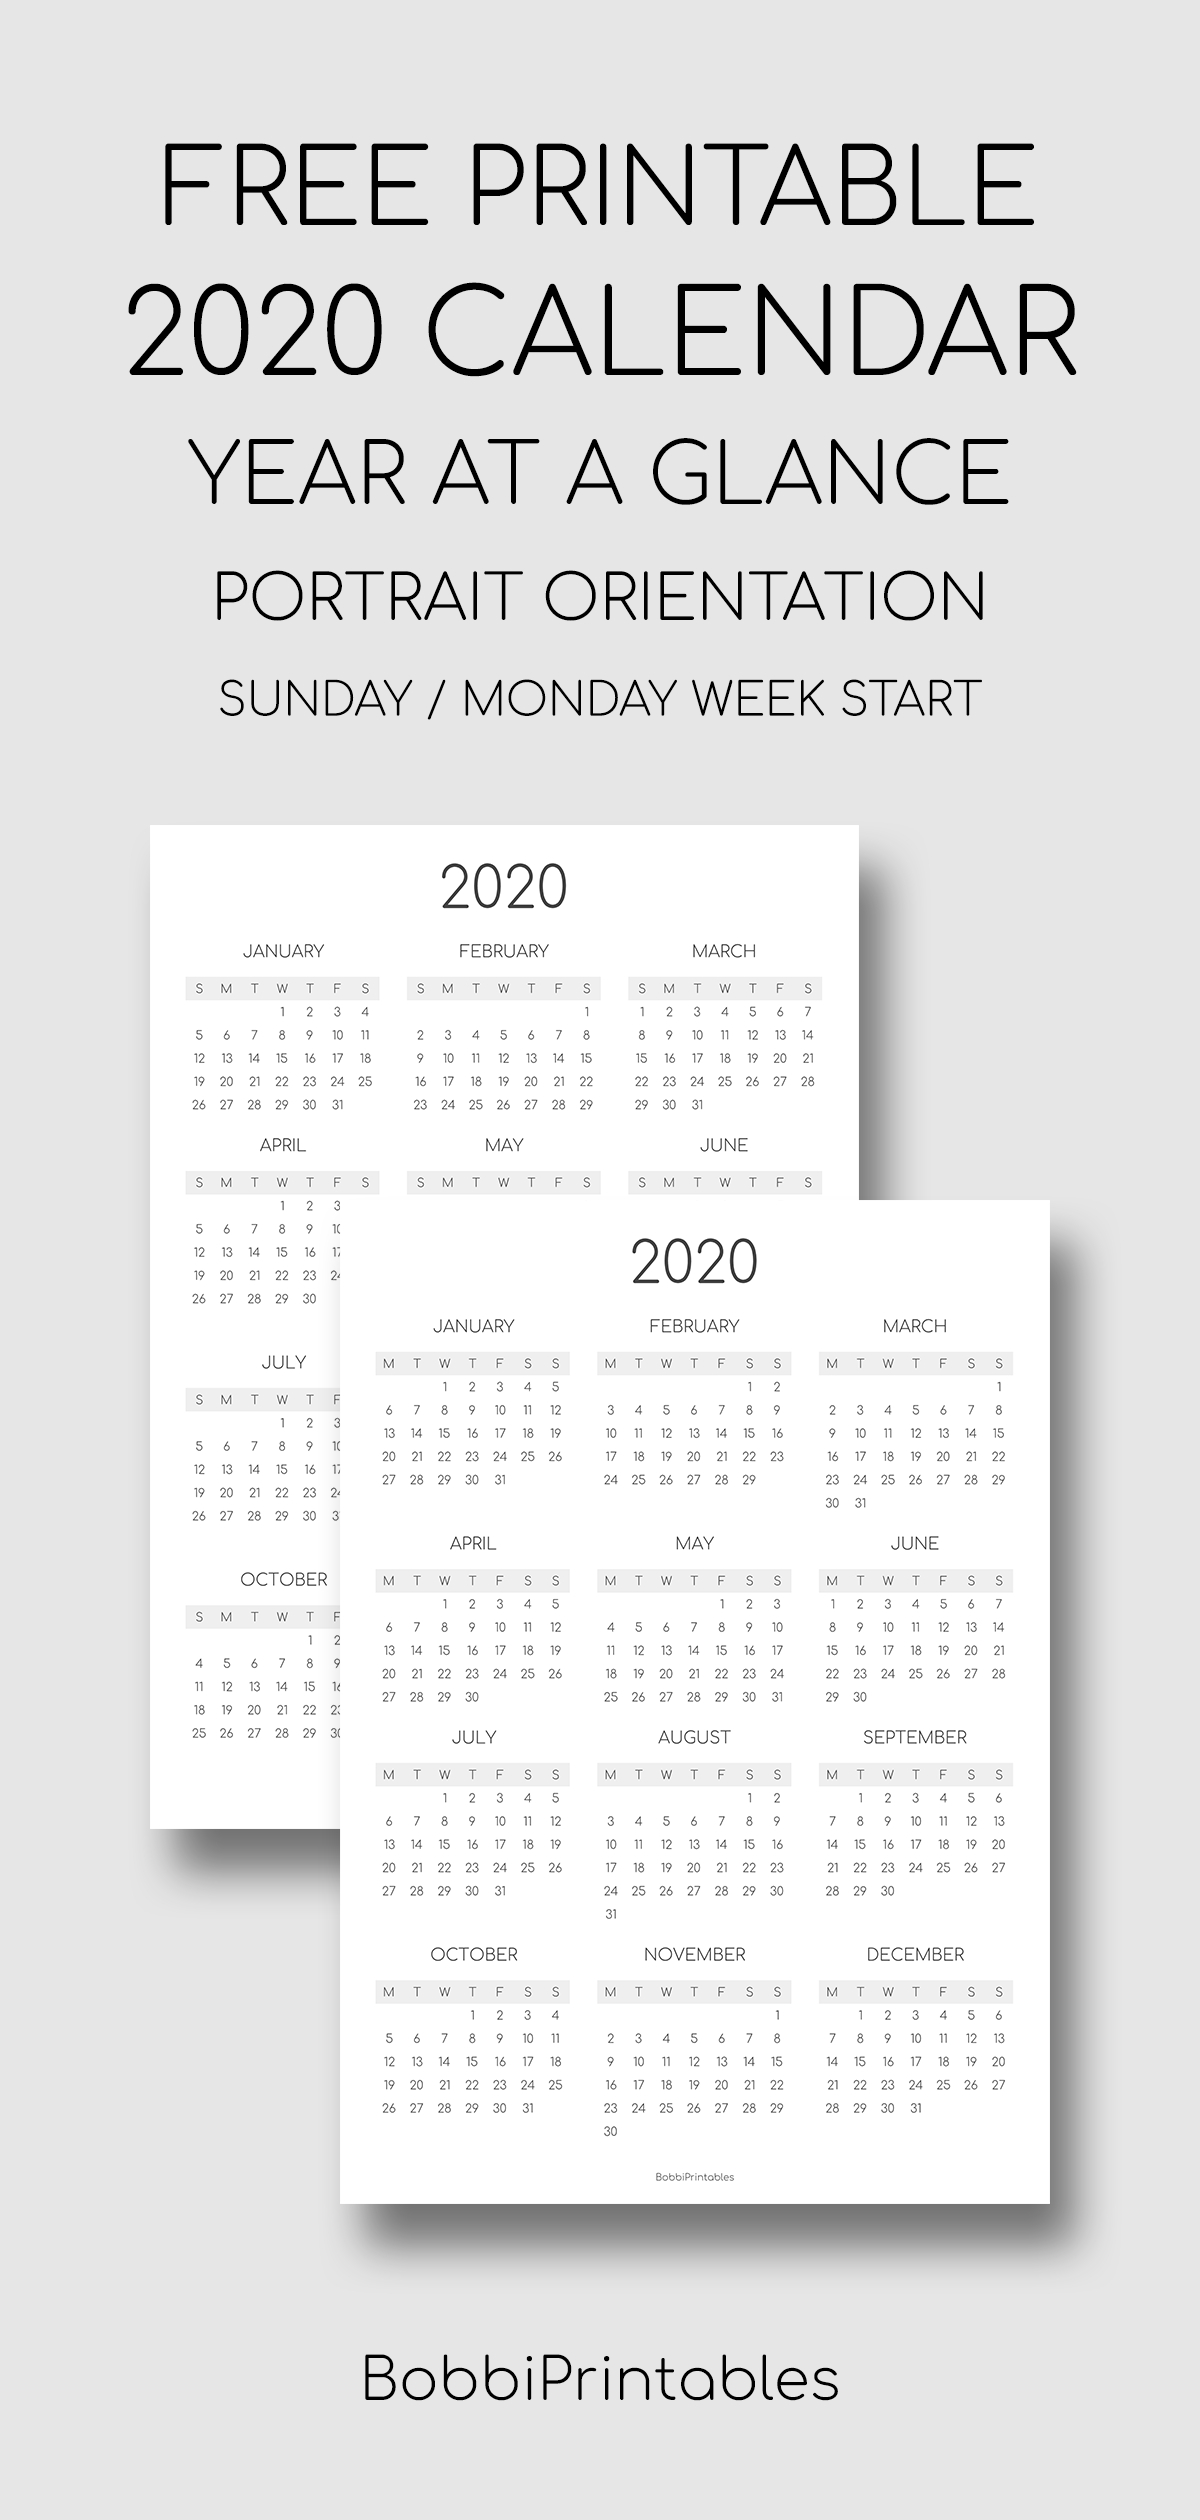 Free Printable 2020 Year At A Glance Calendar  Portrait for 2020 Year At A Glance Printable